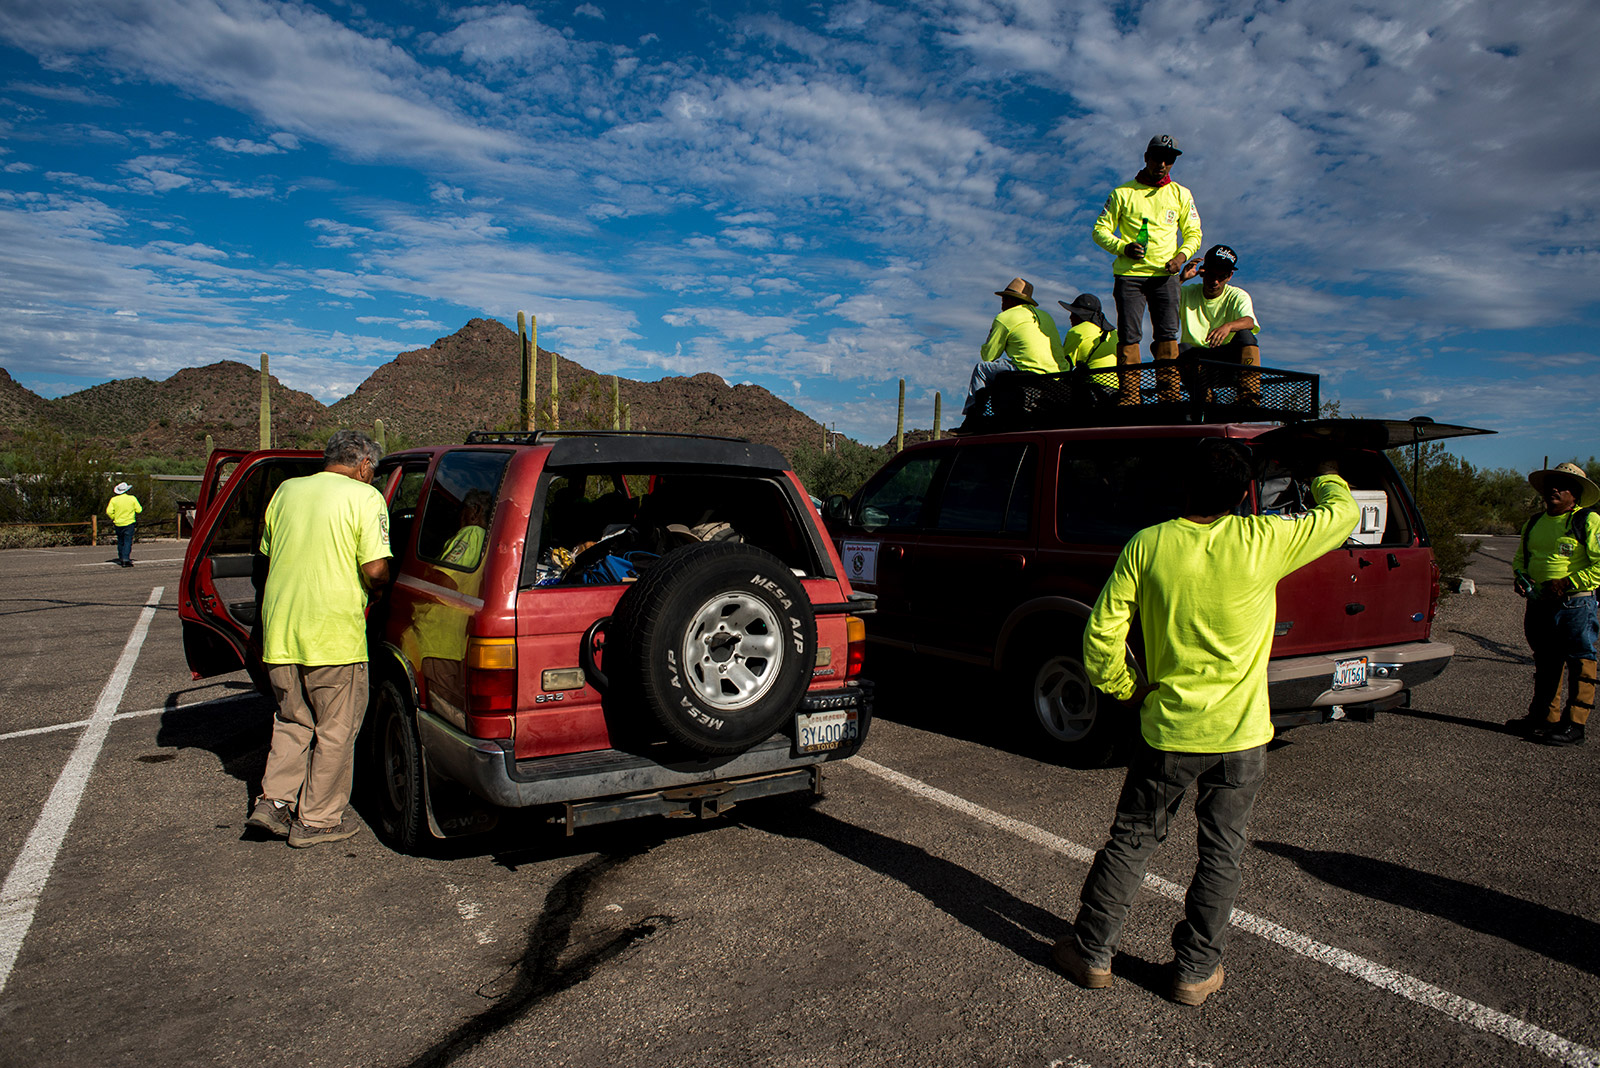 Volunteers with Aguilas Del Desierto load vehicles at Organ Pipe Cactus National Monument in Arizona before driving through the remote stretch of desert along the U.S.-Mexico border. Many of the volunteers wore snake-proof gaiters over their boots to protect themselves while searching for migrants in the desert on Aug. 26, 2017. <em>(Brandon Quester/inewsource)</em>